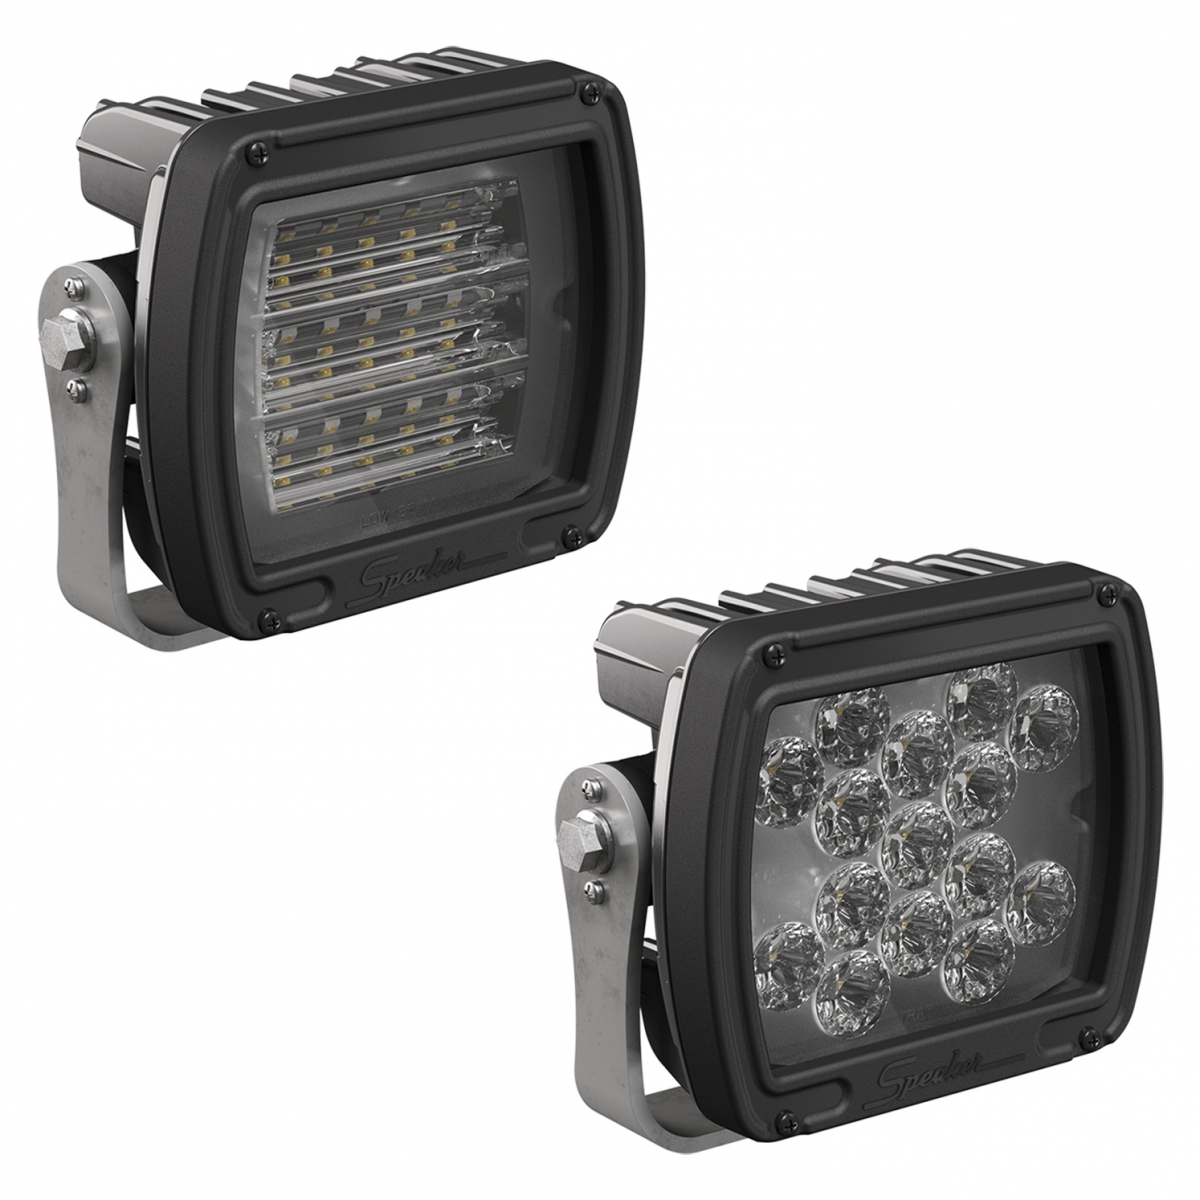 LED Work Light – Model 526